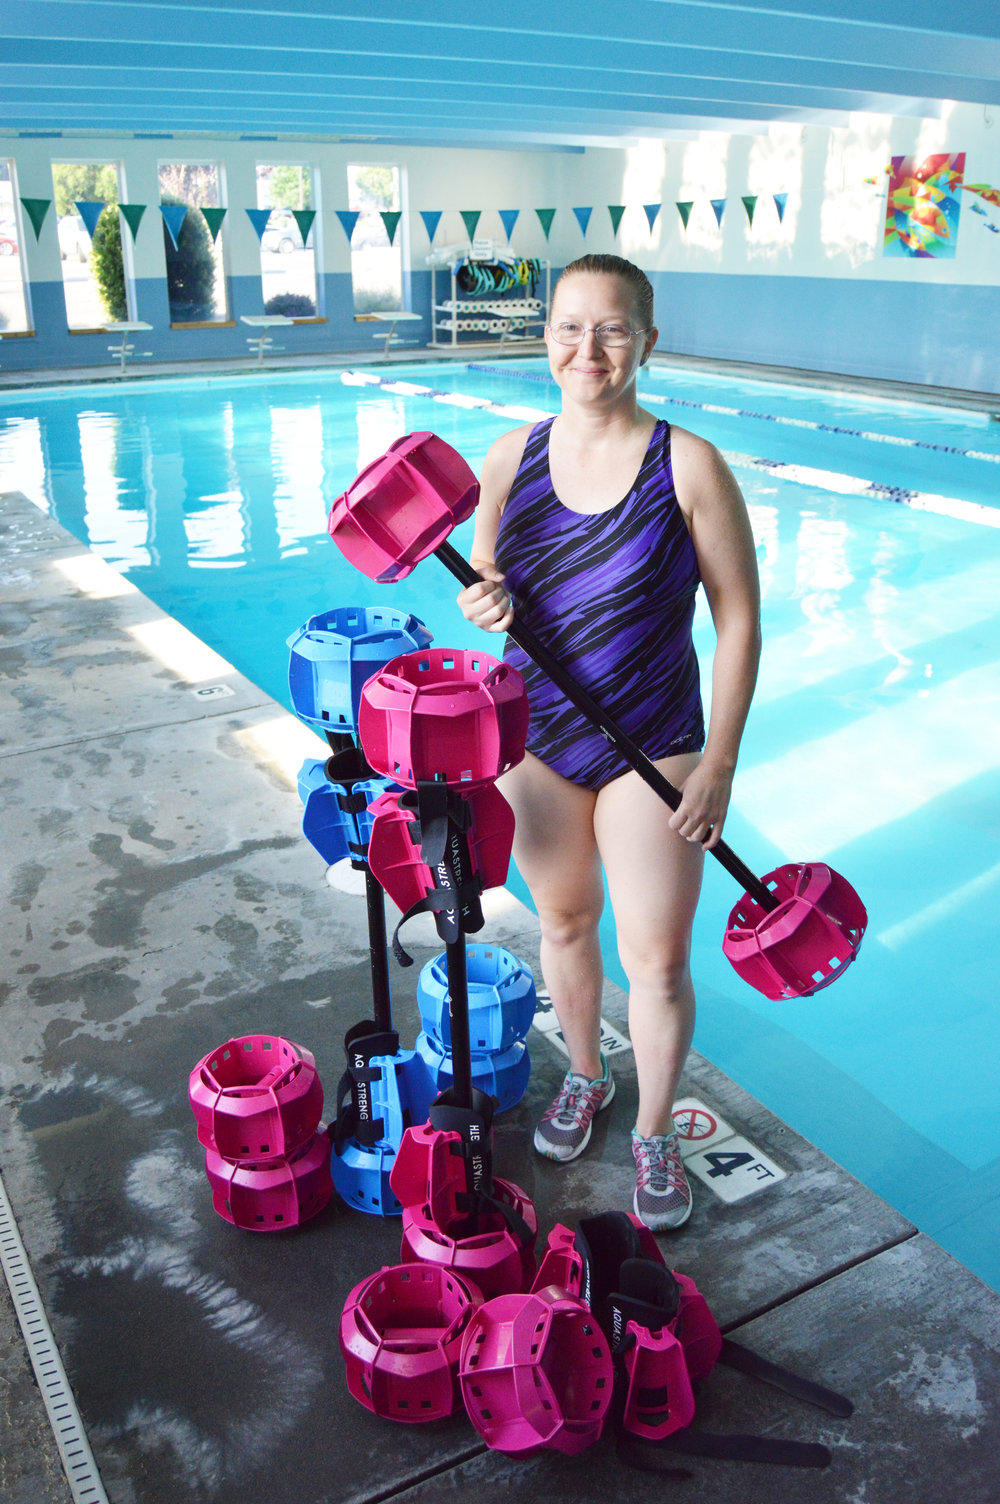 Kelli dunfee, aquatic fitness director.